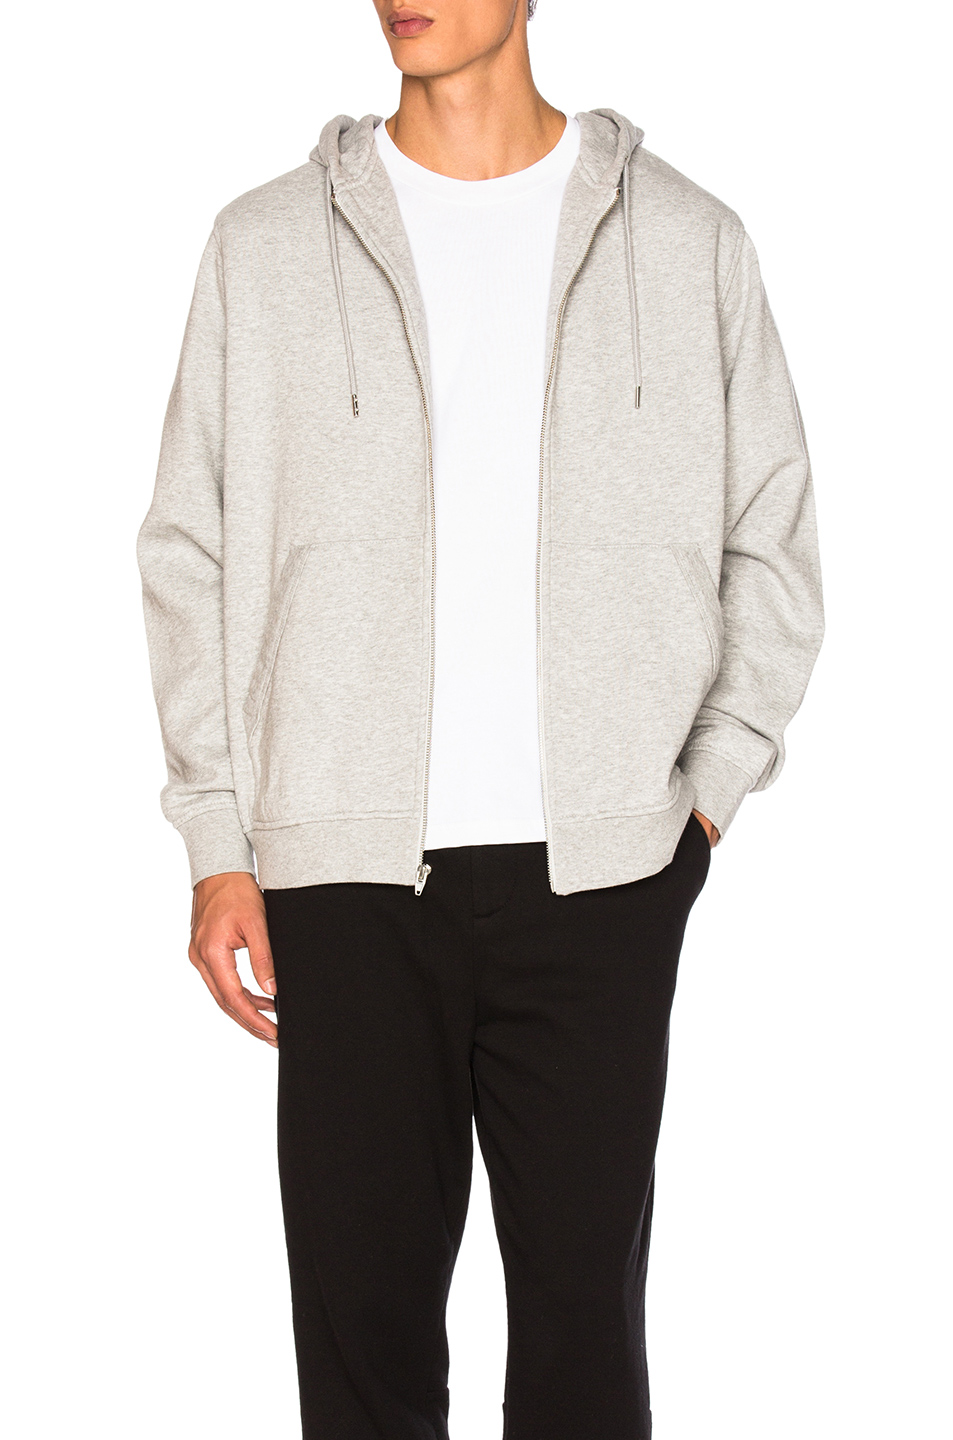 Alexander Wang Zip Up Hoodie in Gray